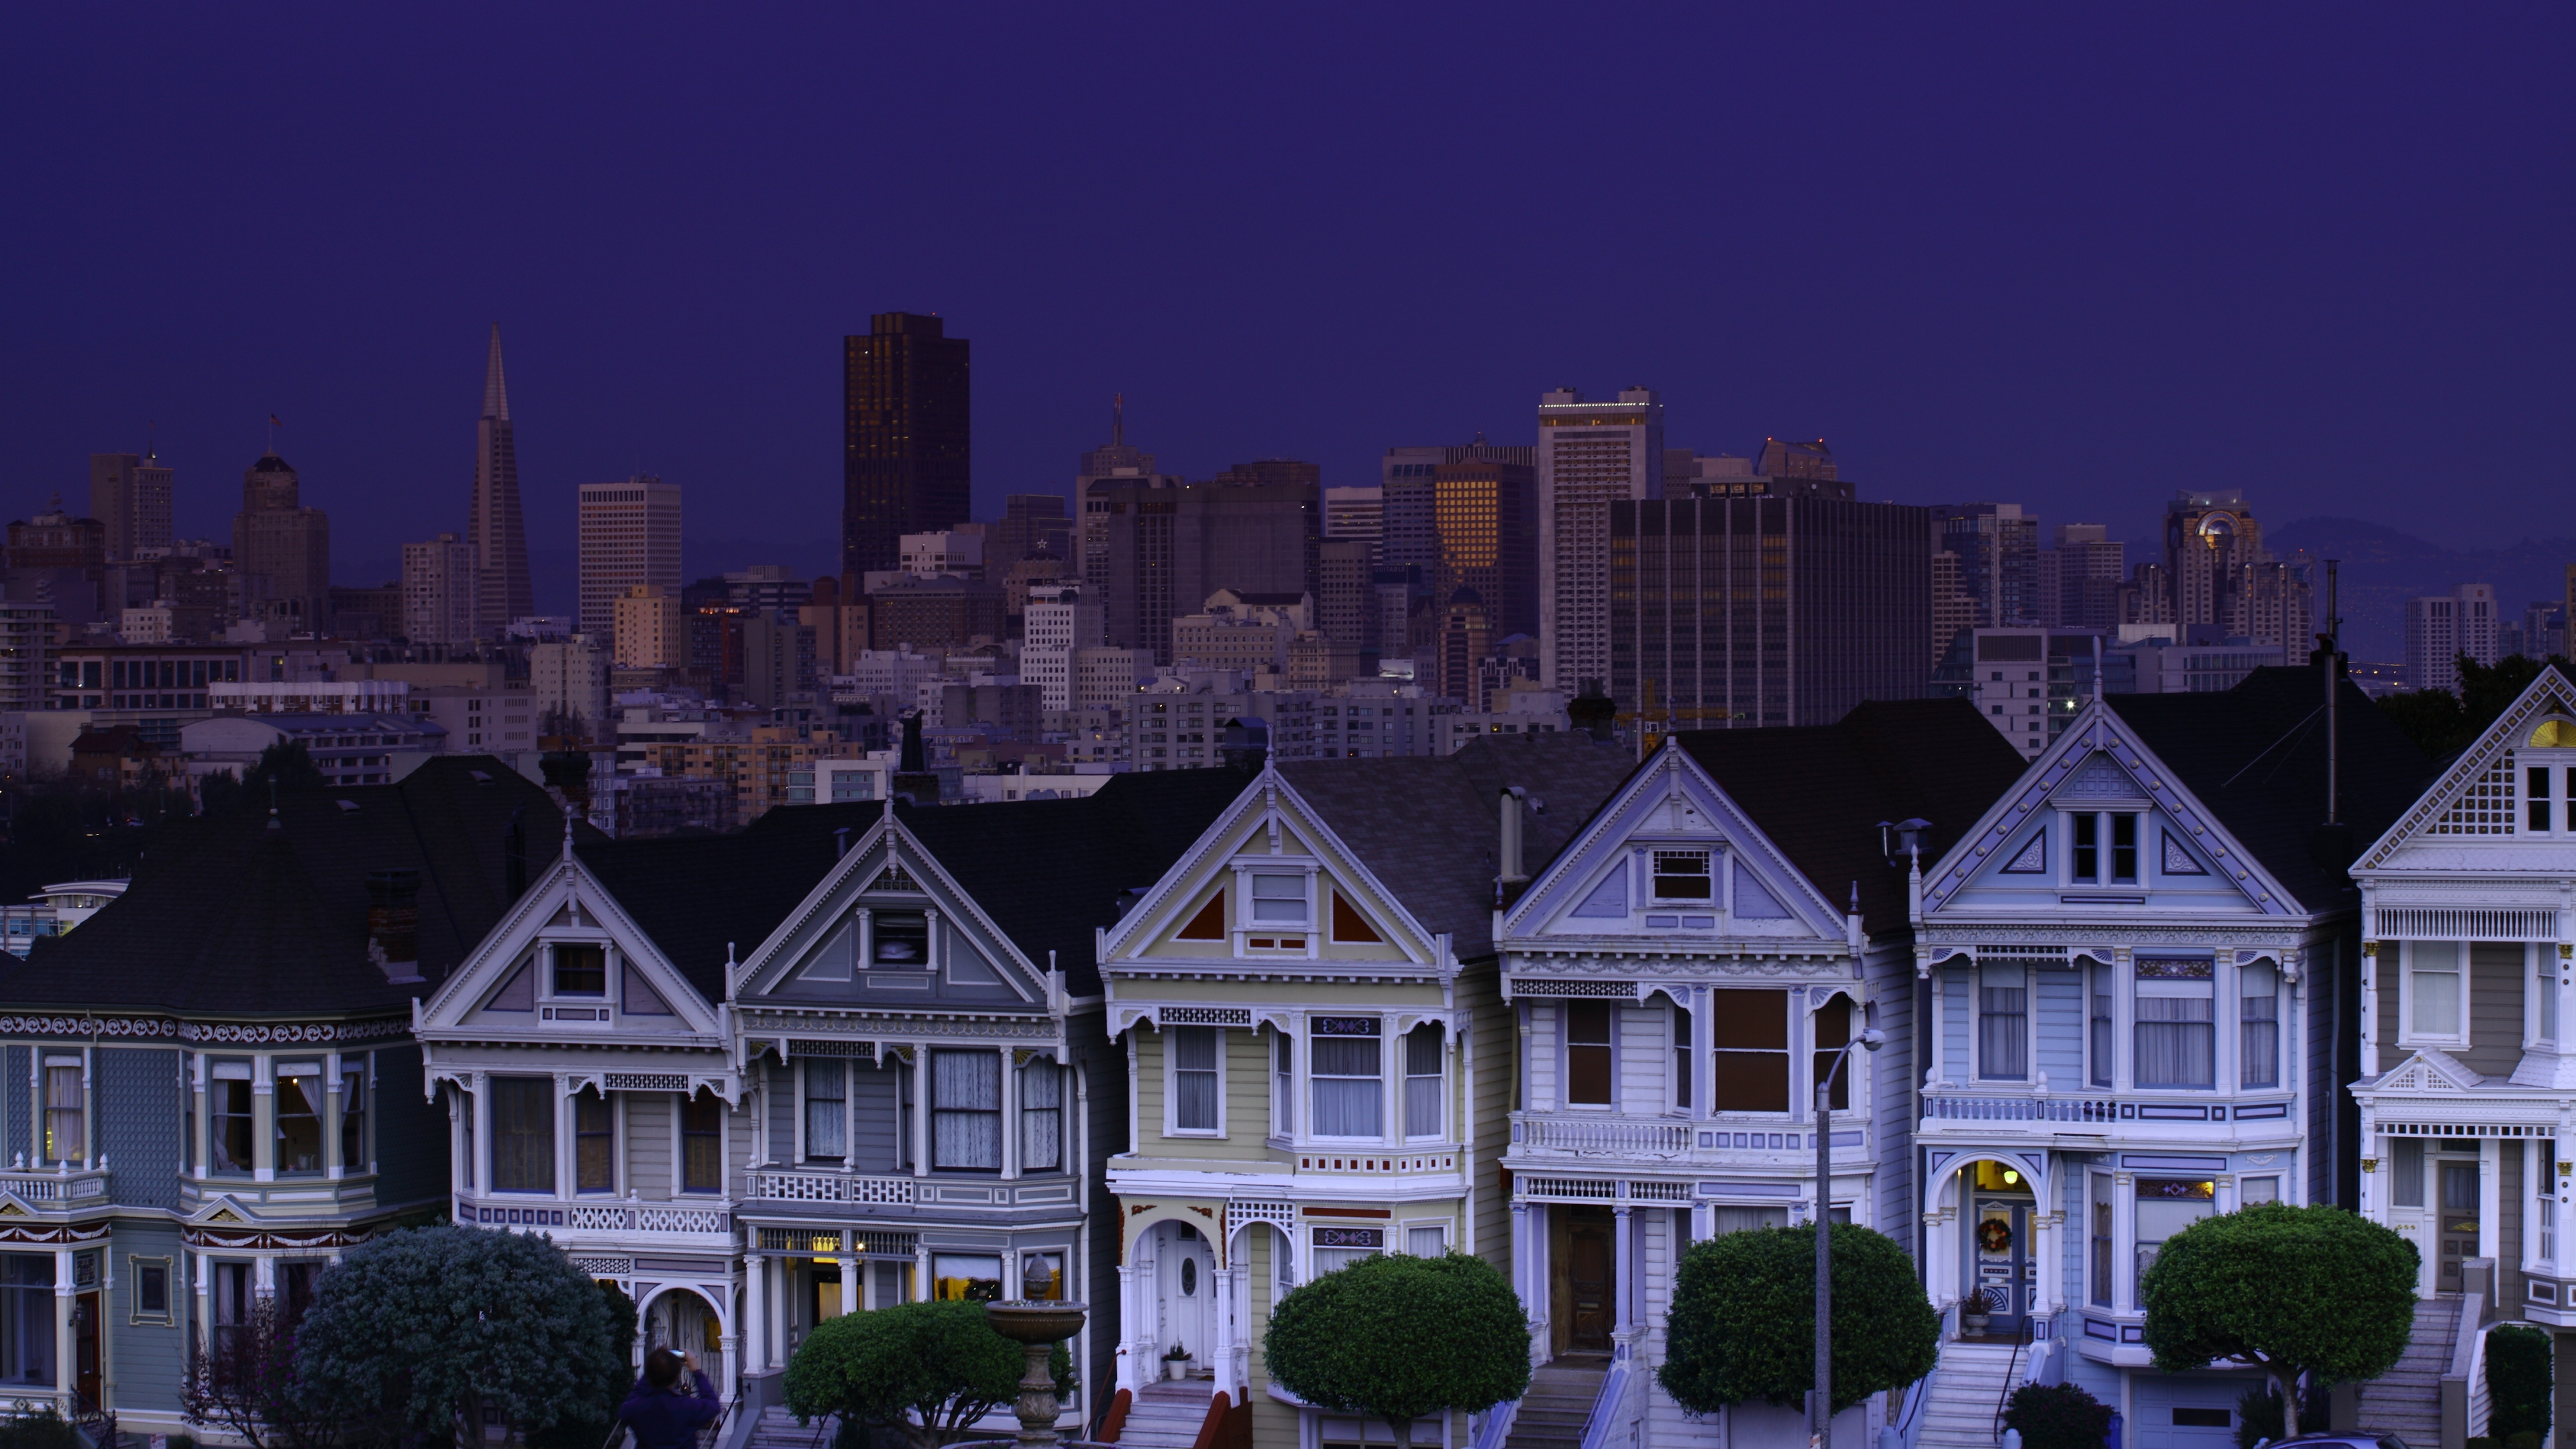 3840x2160 Wallpaper usa san francisco night blue sky moon 3840x2160